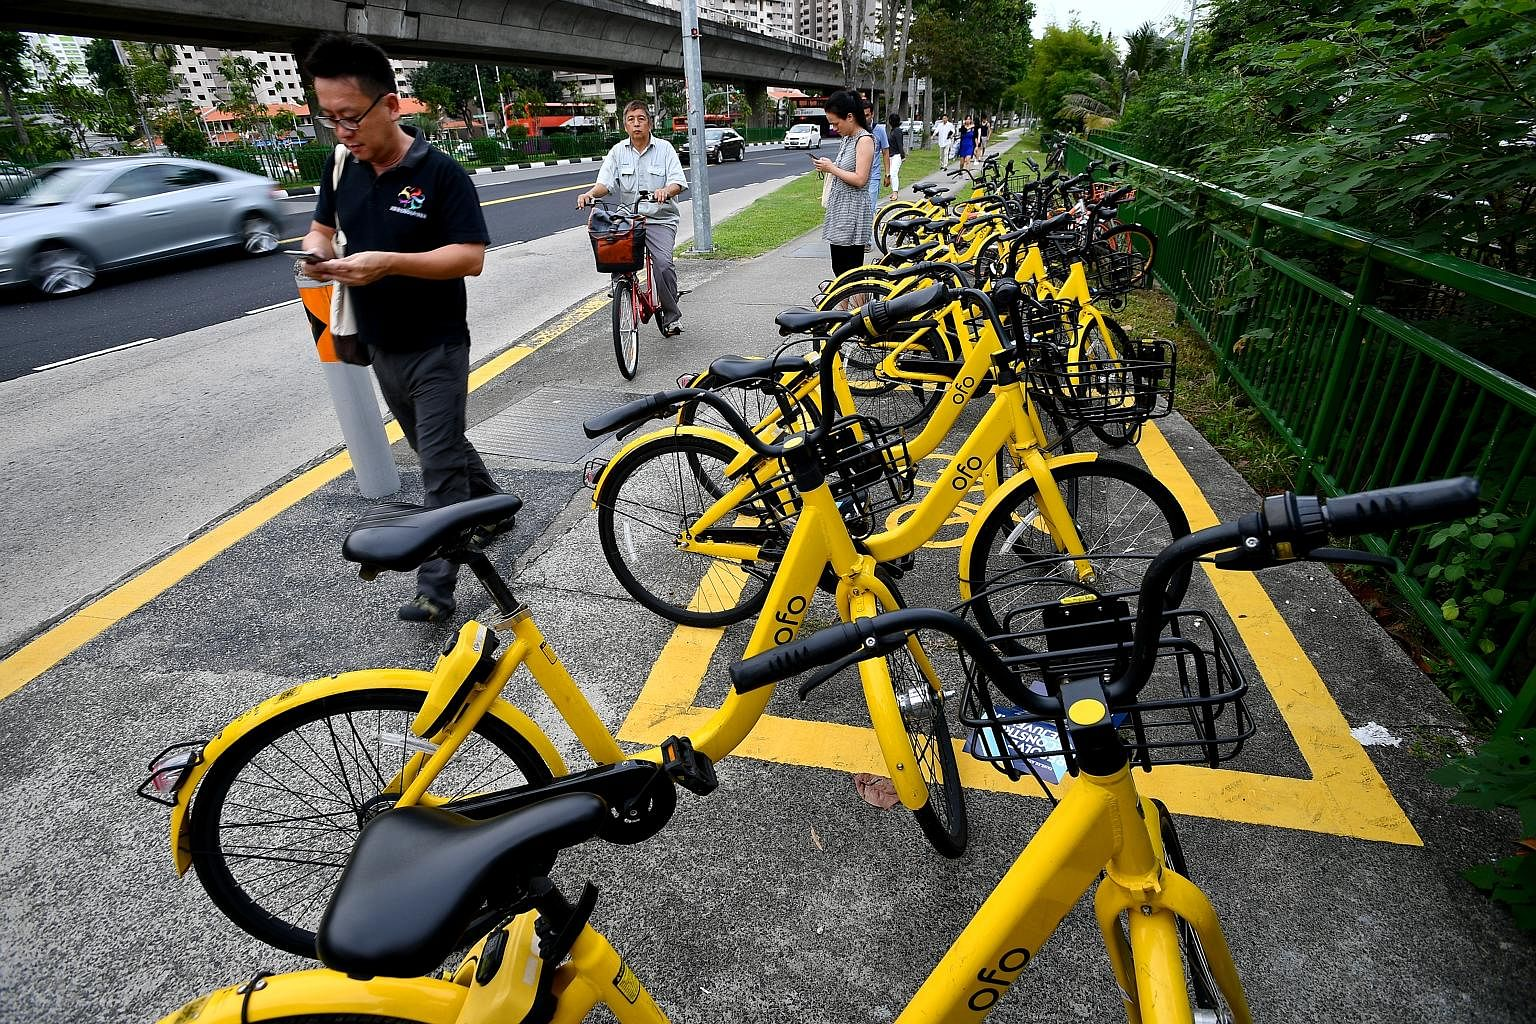 Ofo, which had been allowed to operate 25,000 two-wheelers under the Land Transport Authority's licensing scheme, later requested that this number be slashed to 10,000. It had cited difficulty in meeting its financial obligations.